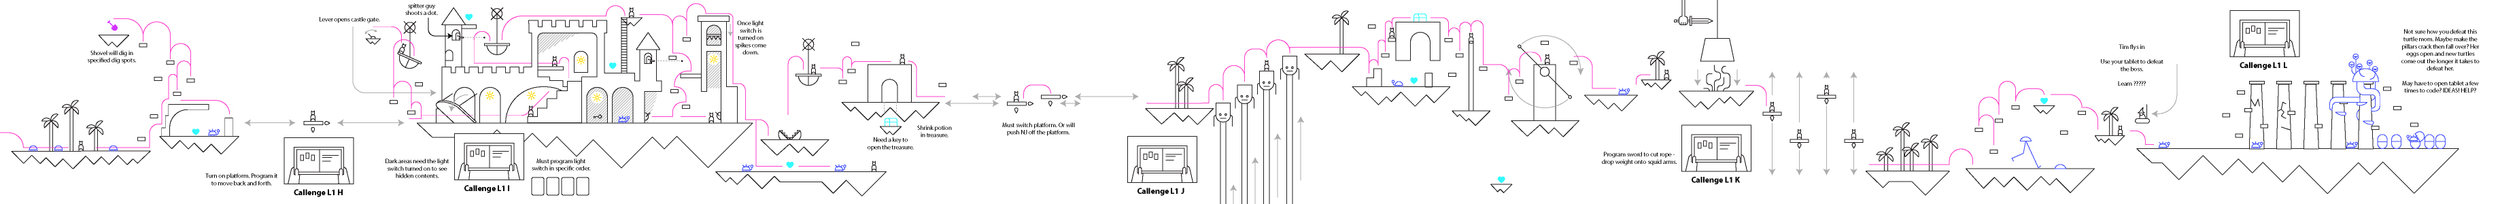 Level 1 A - Wireframe